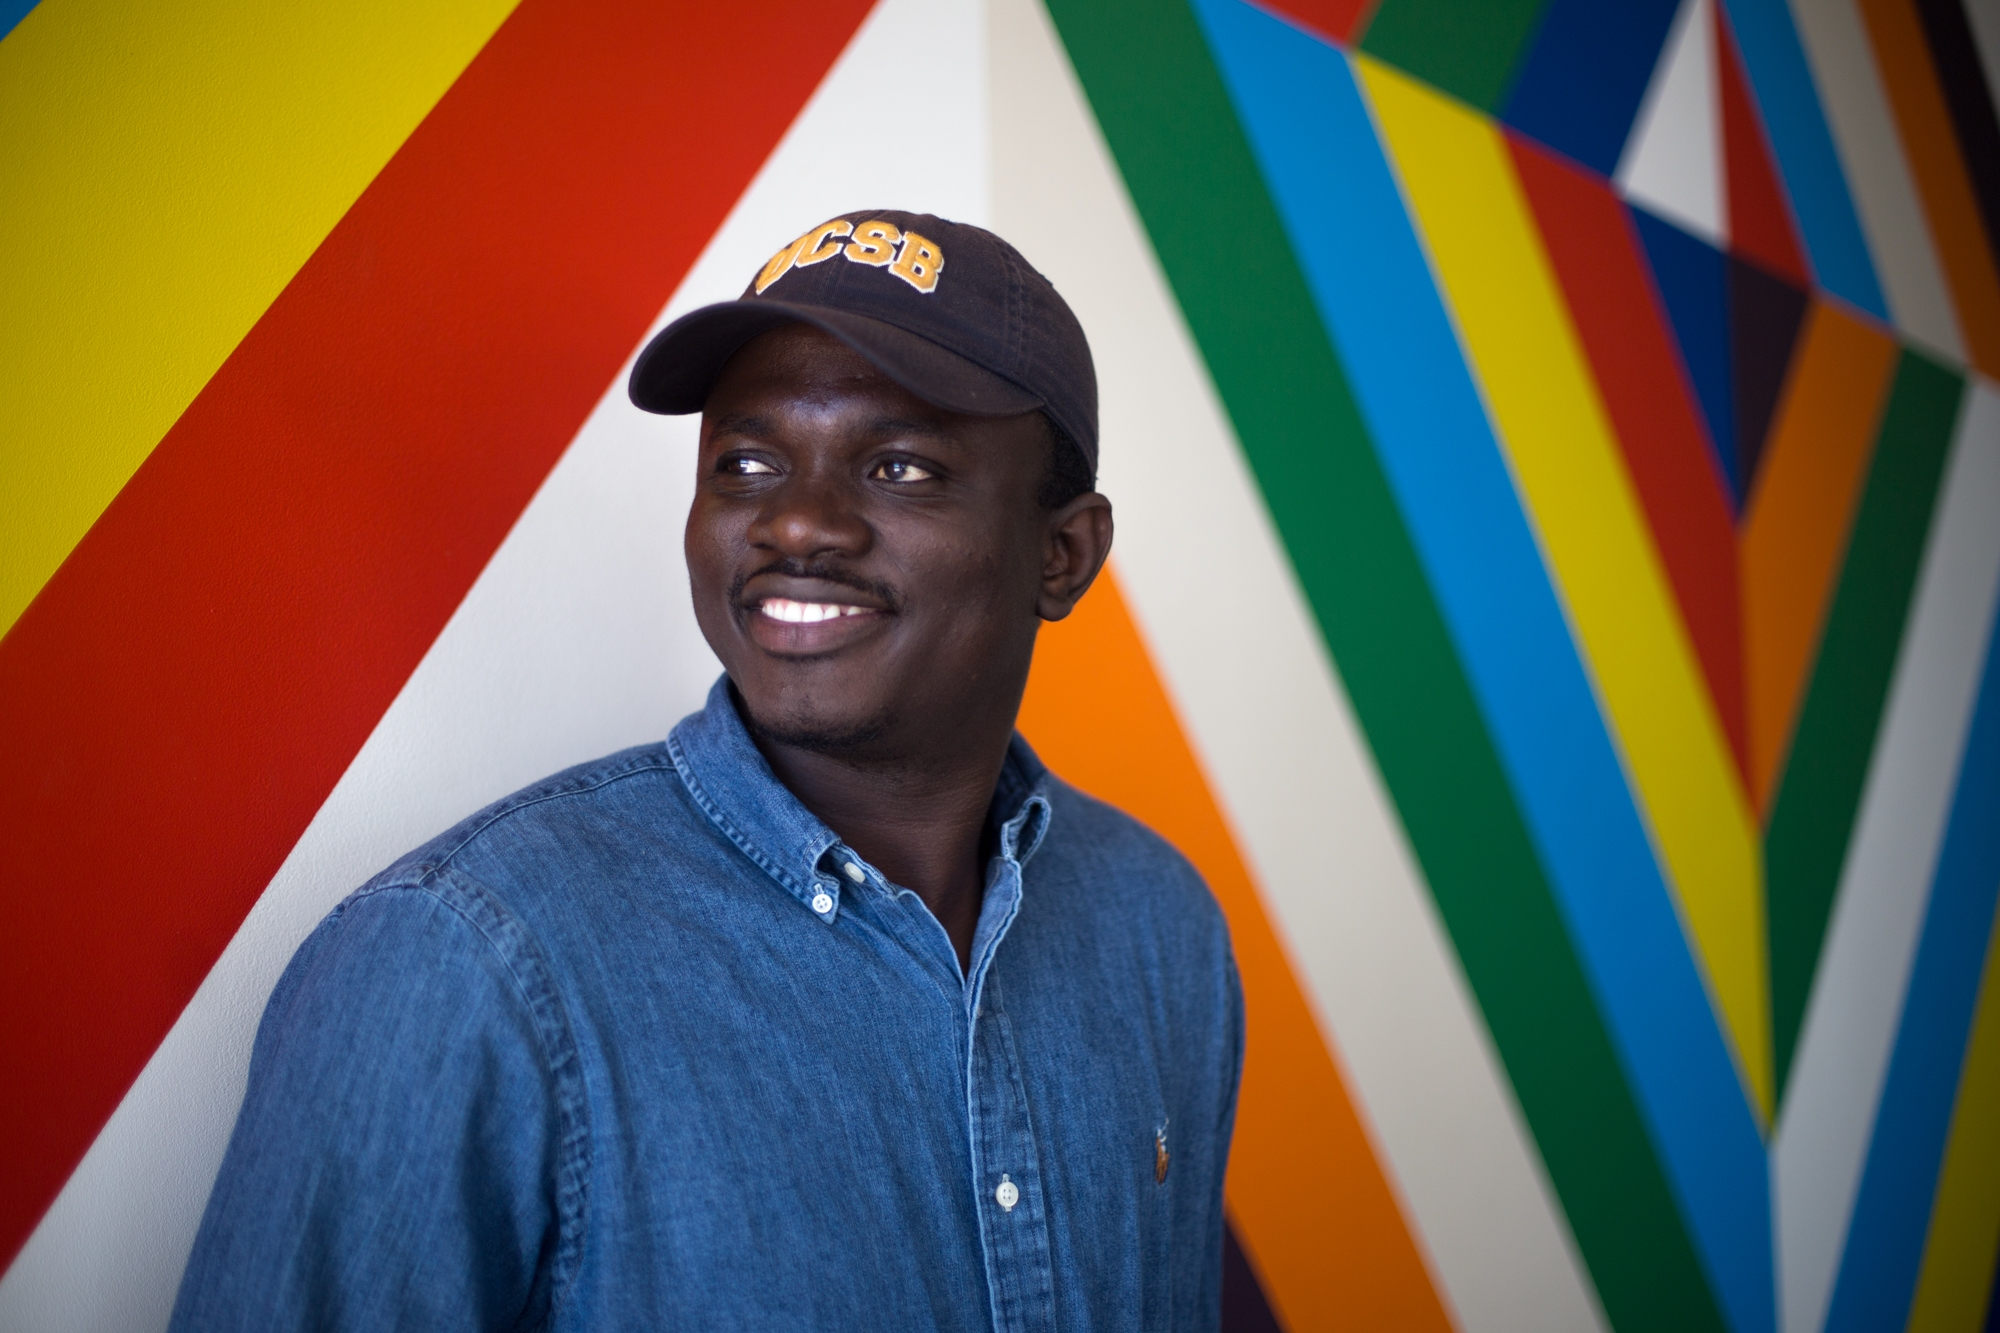 UCSB student Alagie Jammeh gains political asylum in the United States. Jenny Luo / Daily Nexus